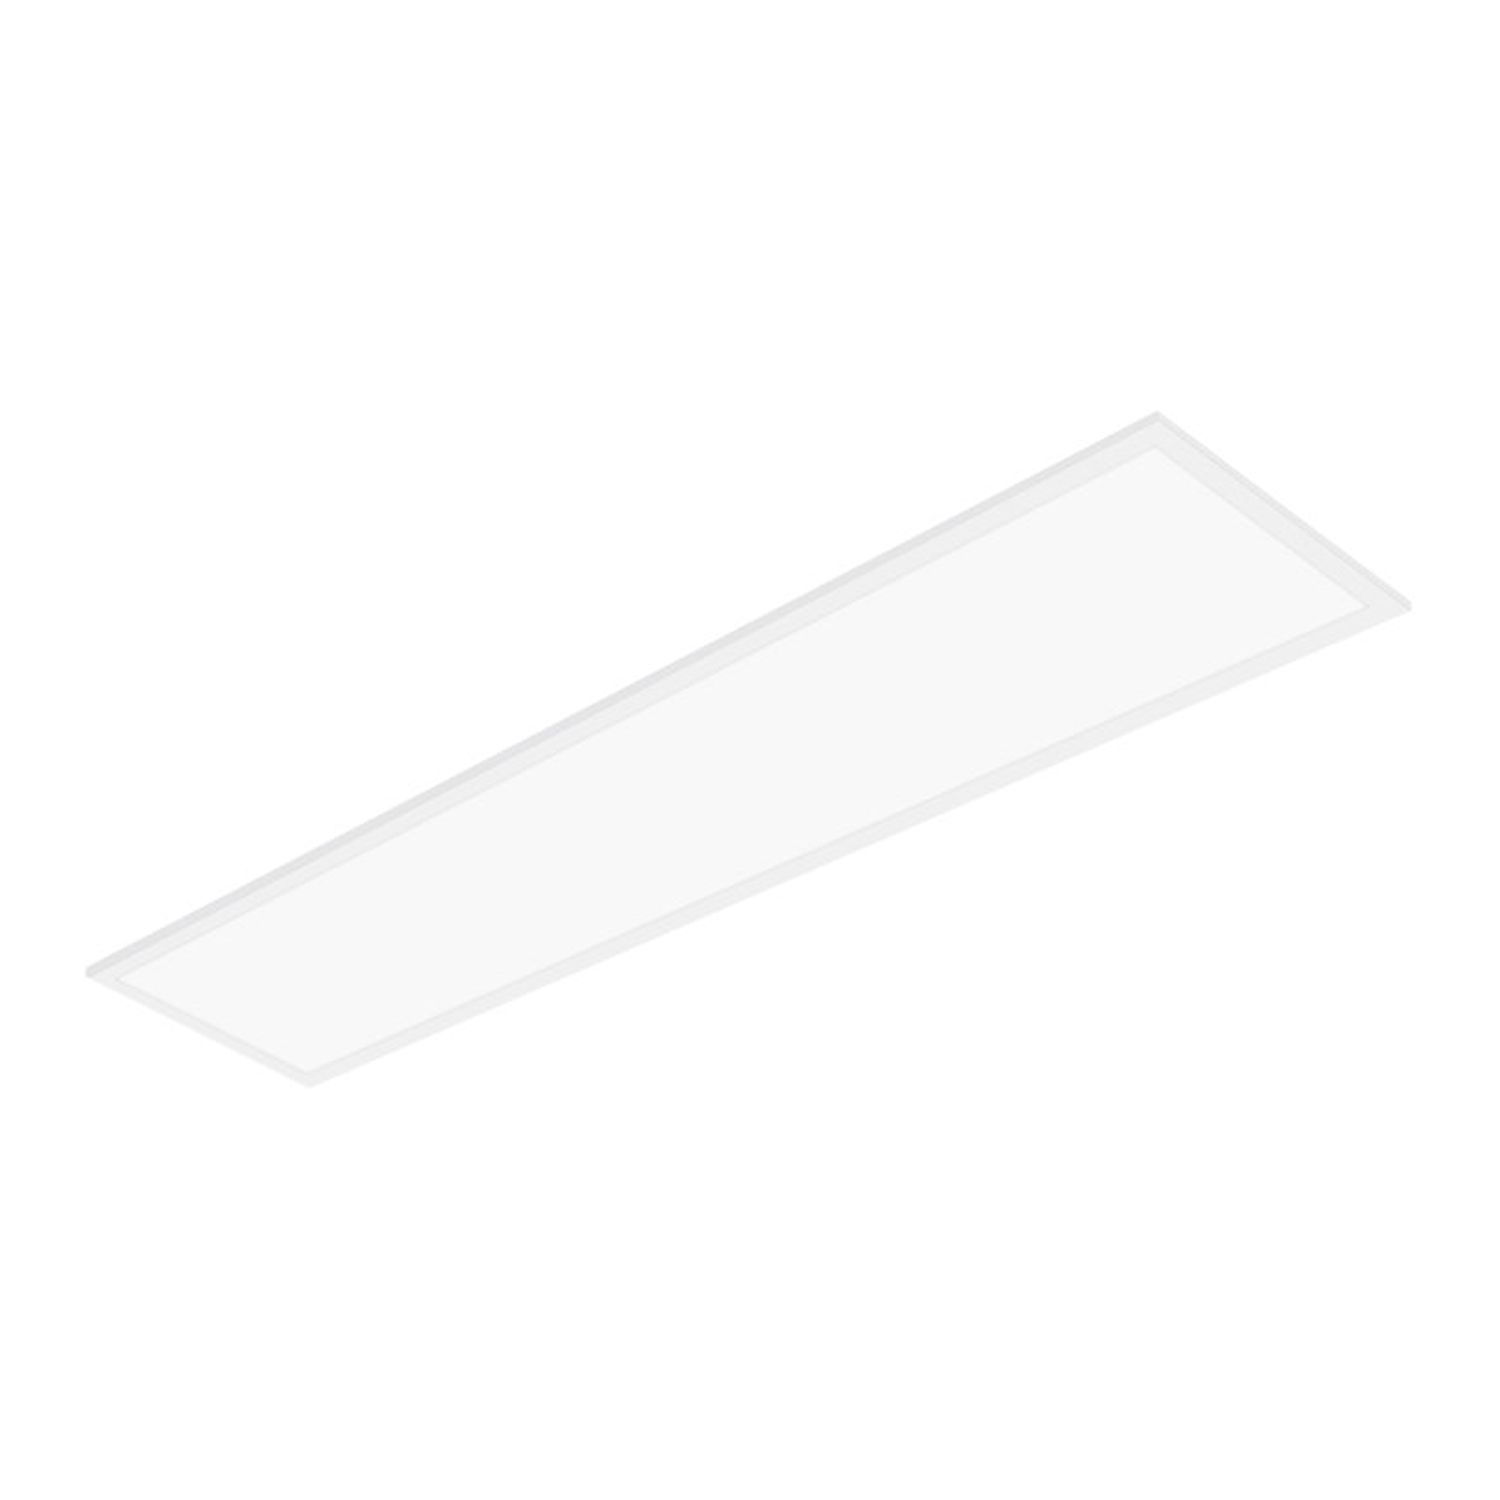 Ledvance LED Panel Performance 120x30cm 4000K 30W UGR <19 | Dali Dimmable -